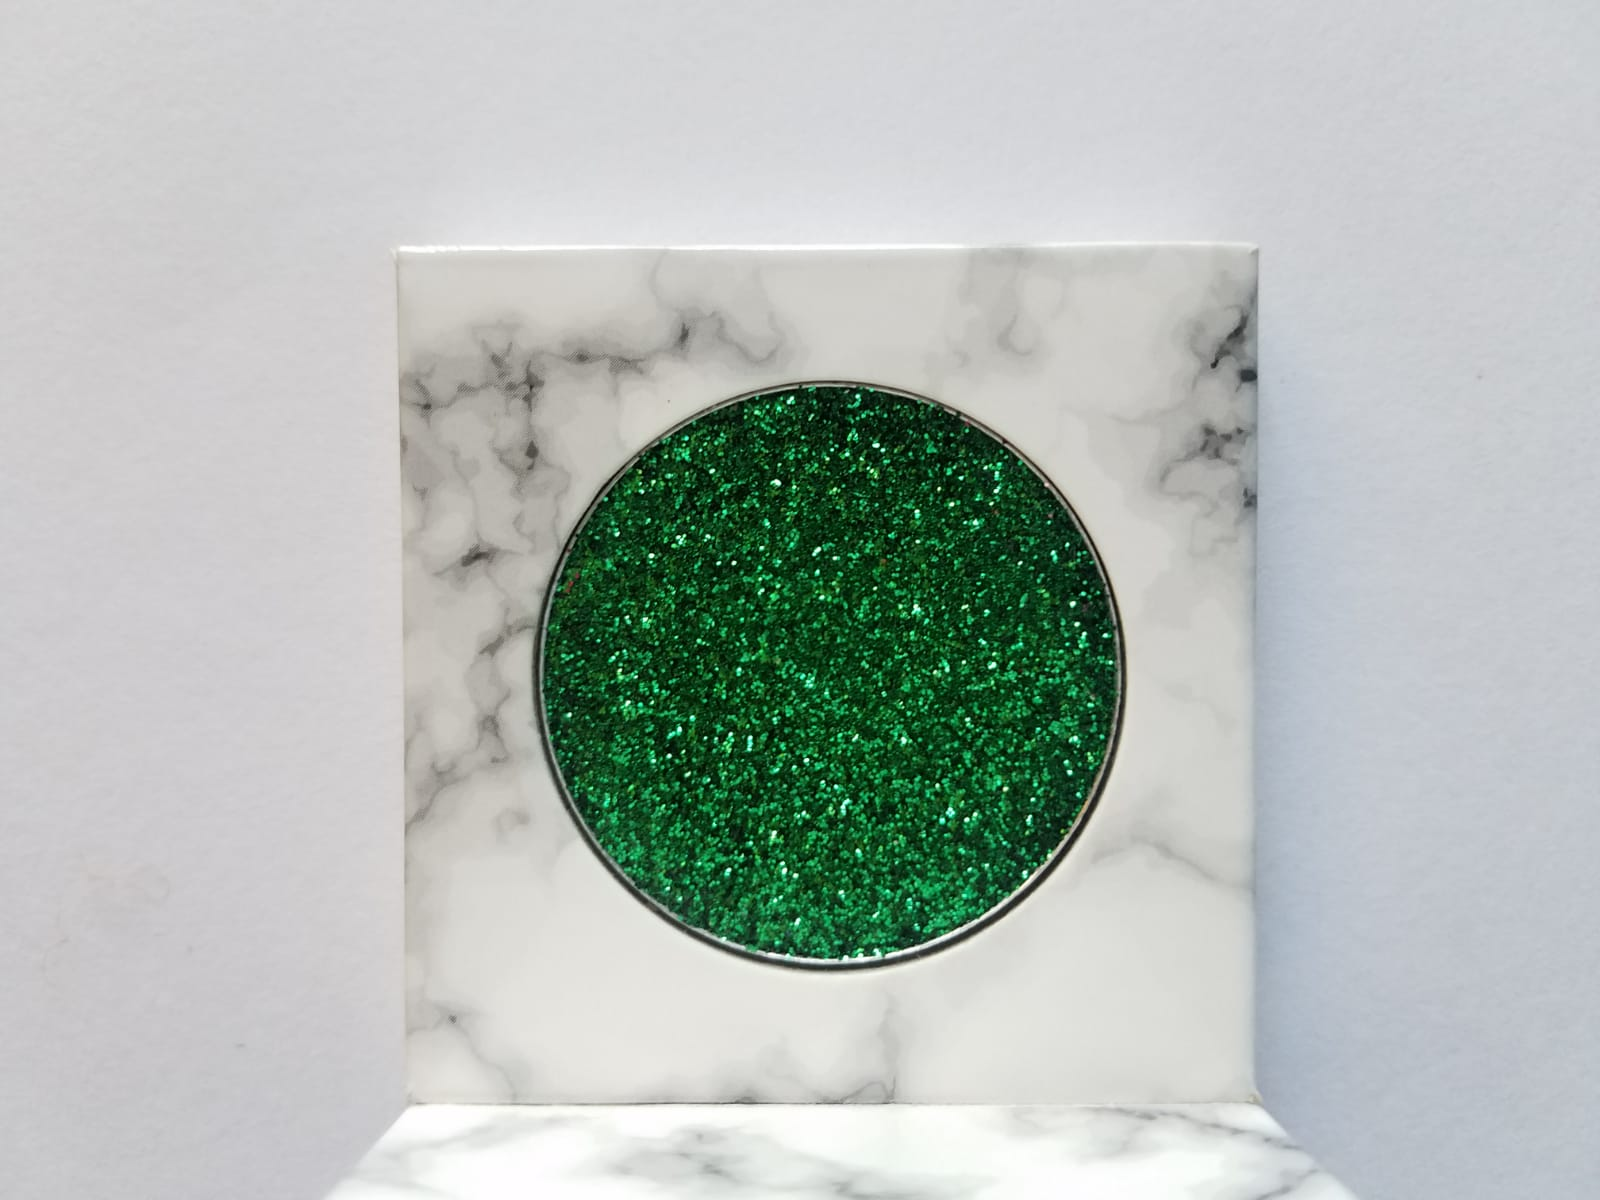 Green Envy Glitter Single Eyeshadow